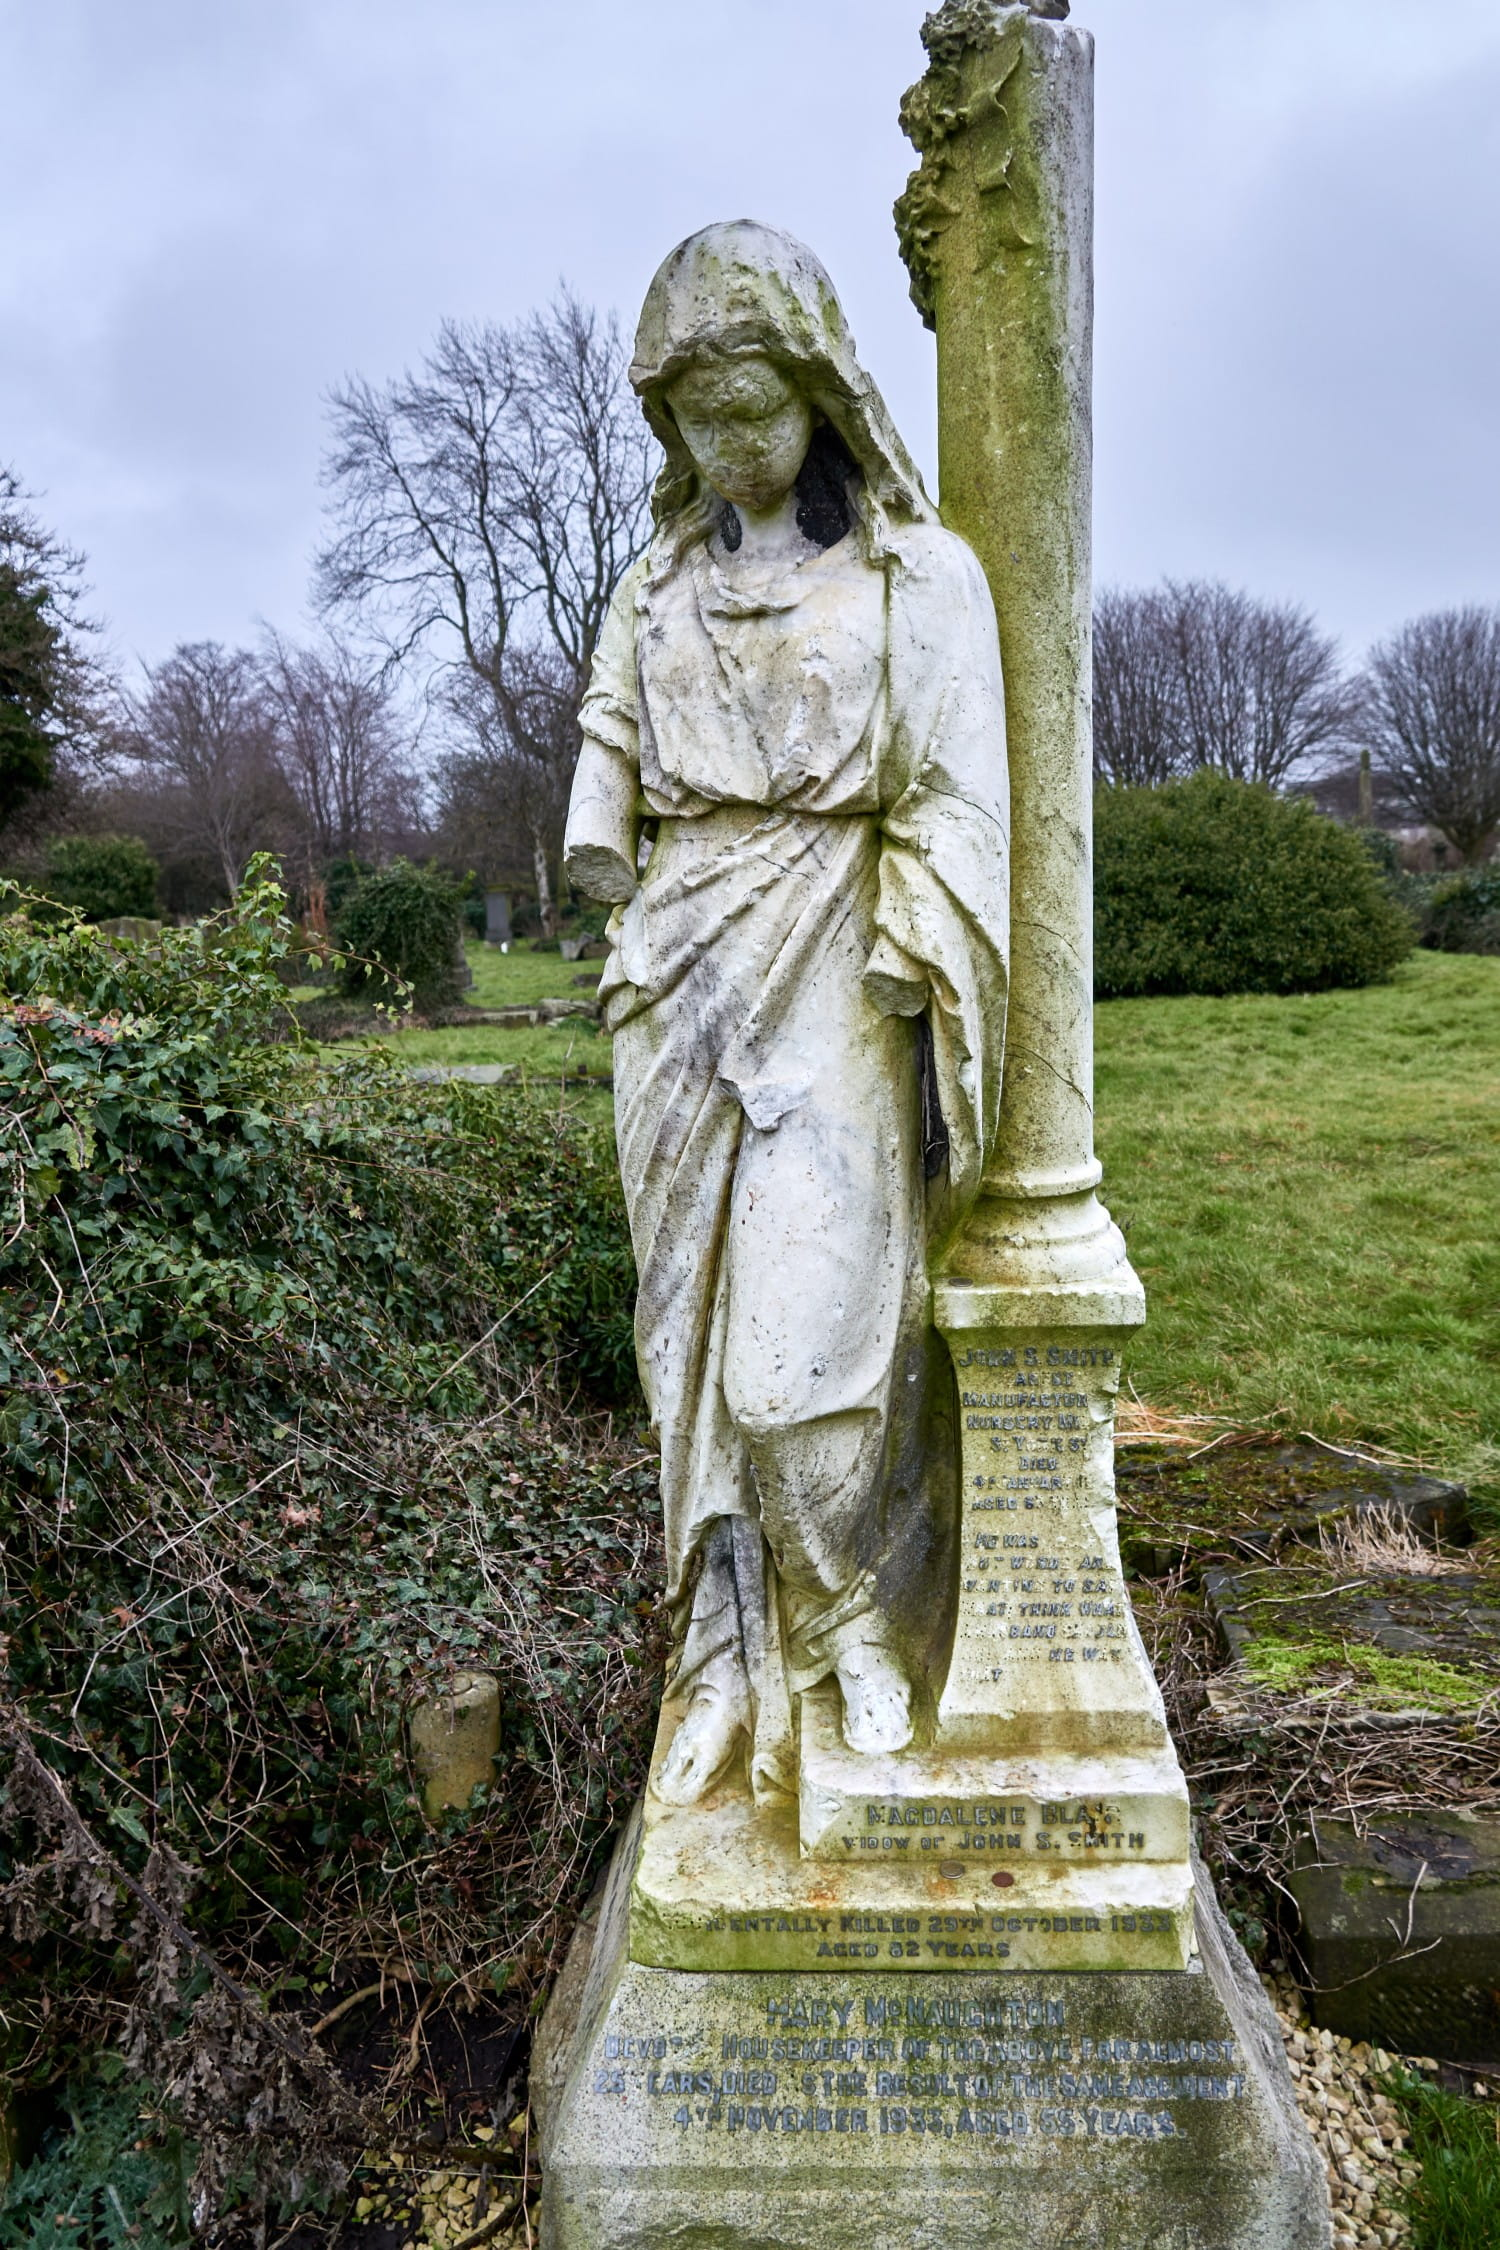 The White Lady. Run round her three tamest avoid being turned to stone! Pictures: Bill Mackintosh